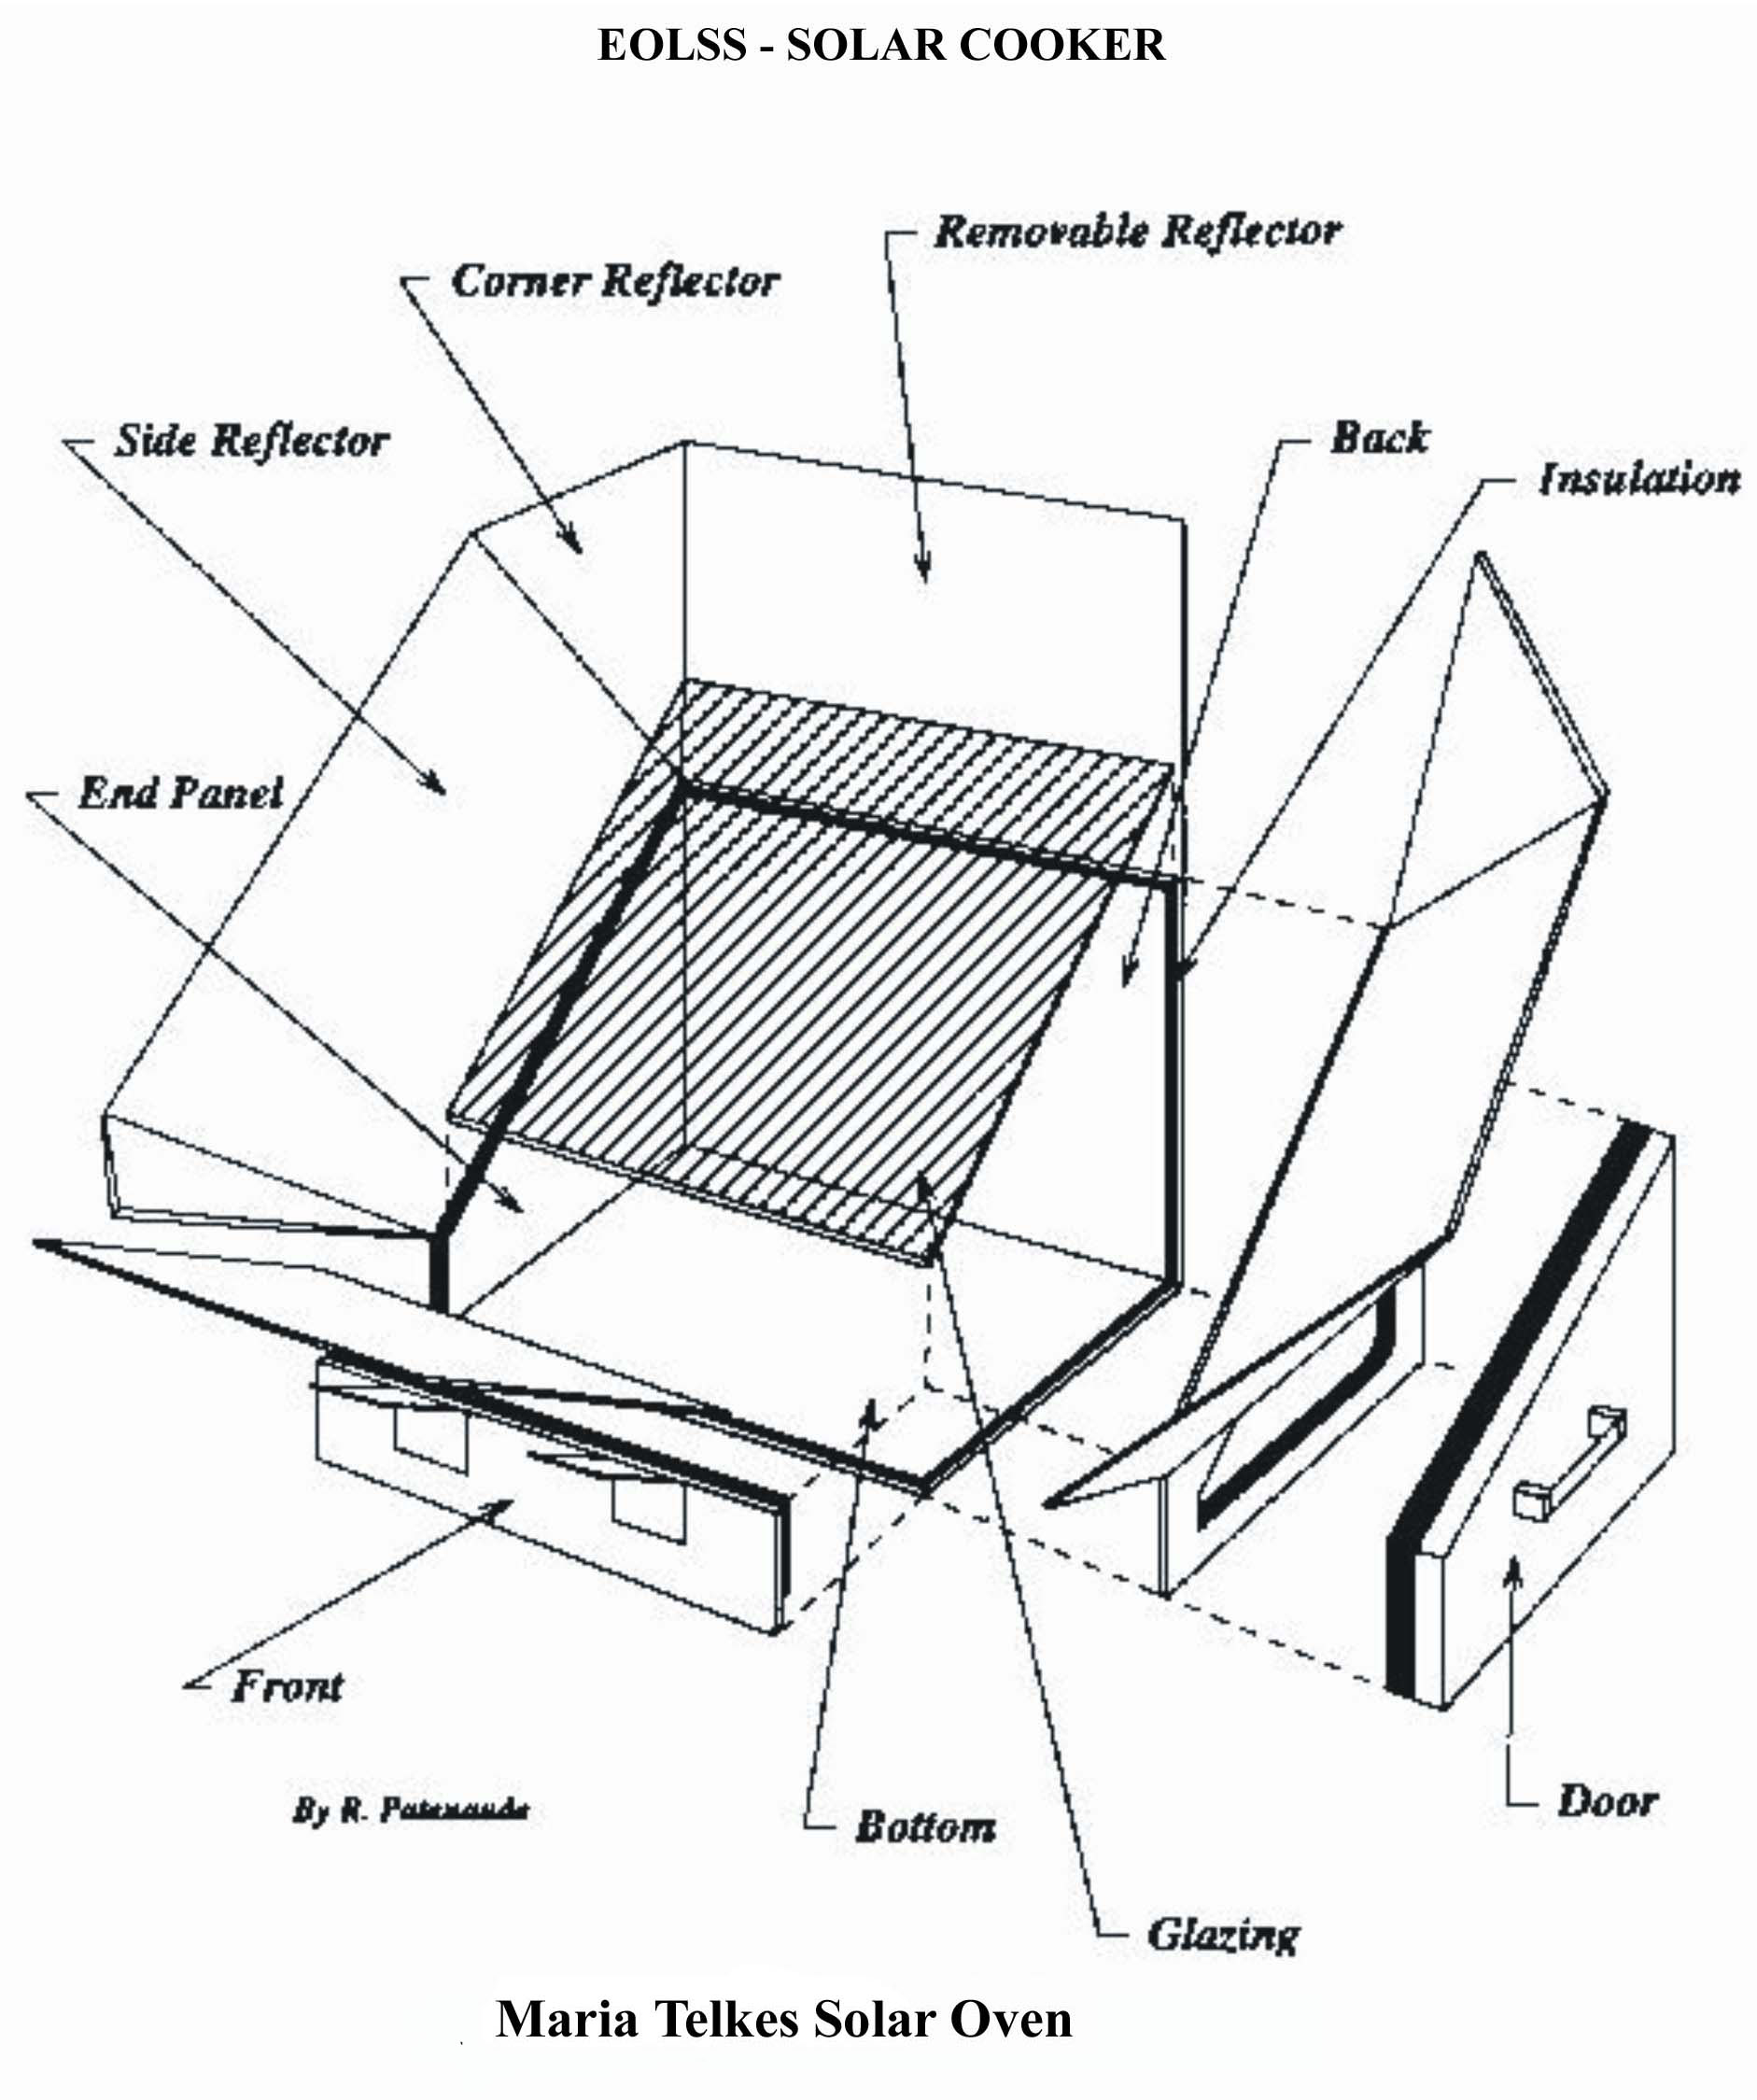 image solar cooker design maria telkes jpg solar cooking rh solarcooking wikia com solar cooker diagram in hindi solar oven instructions on how to make